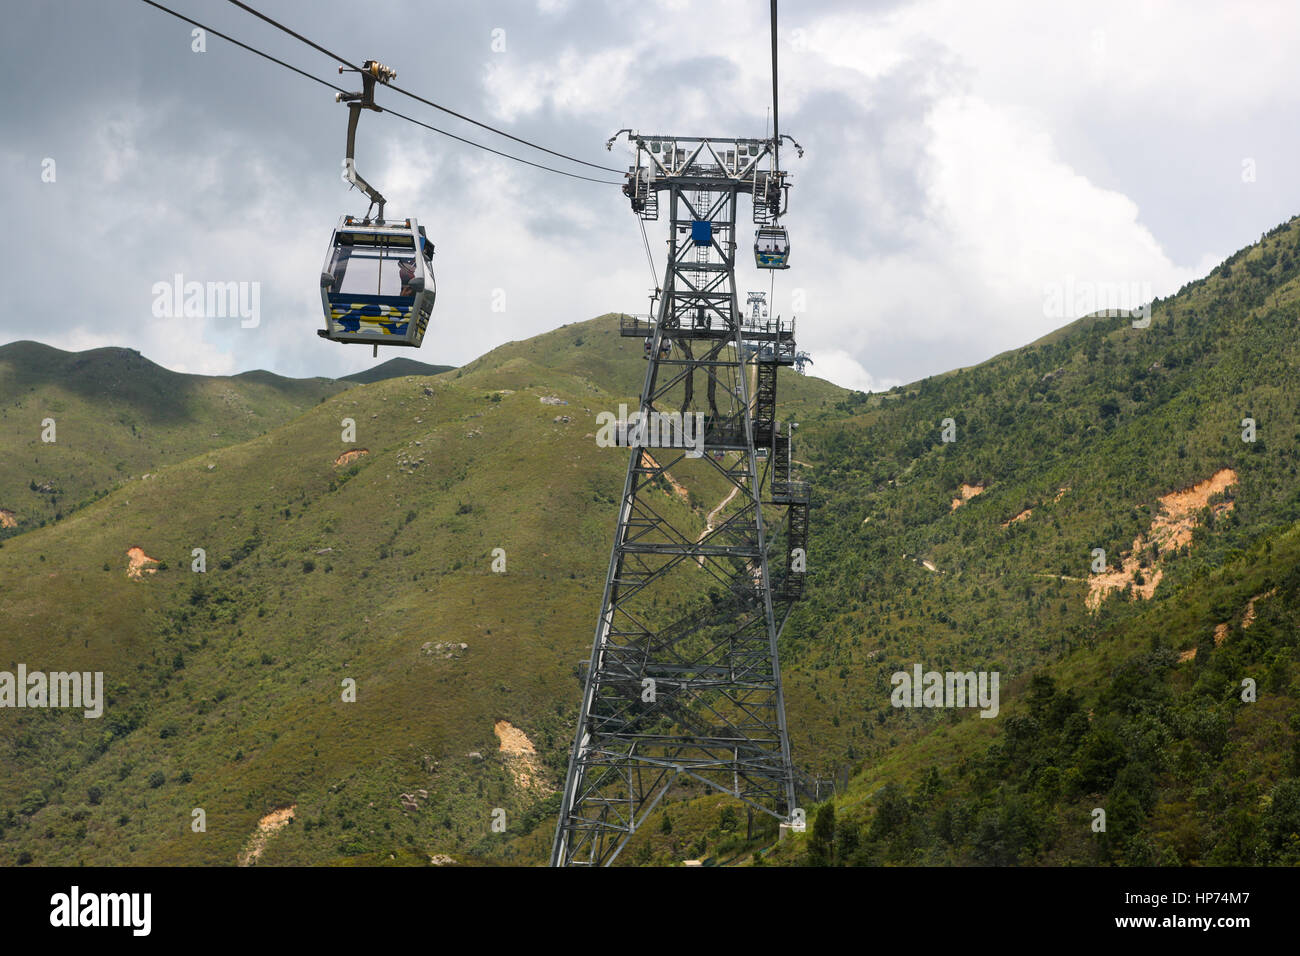 Cable-car system on Lantau Island going to and from the Tian Tan Buddha area - Stock Image